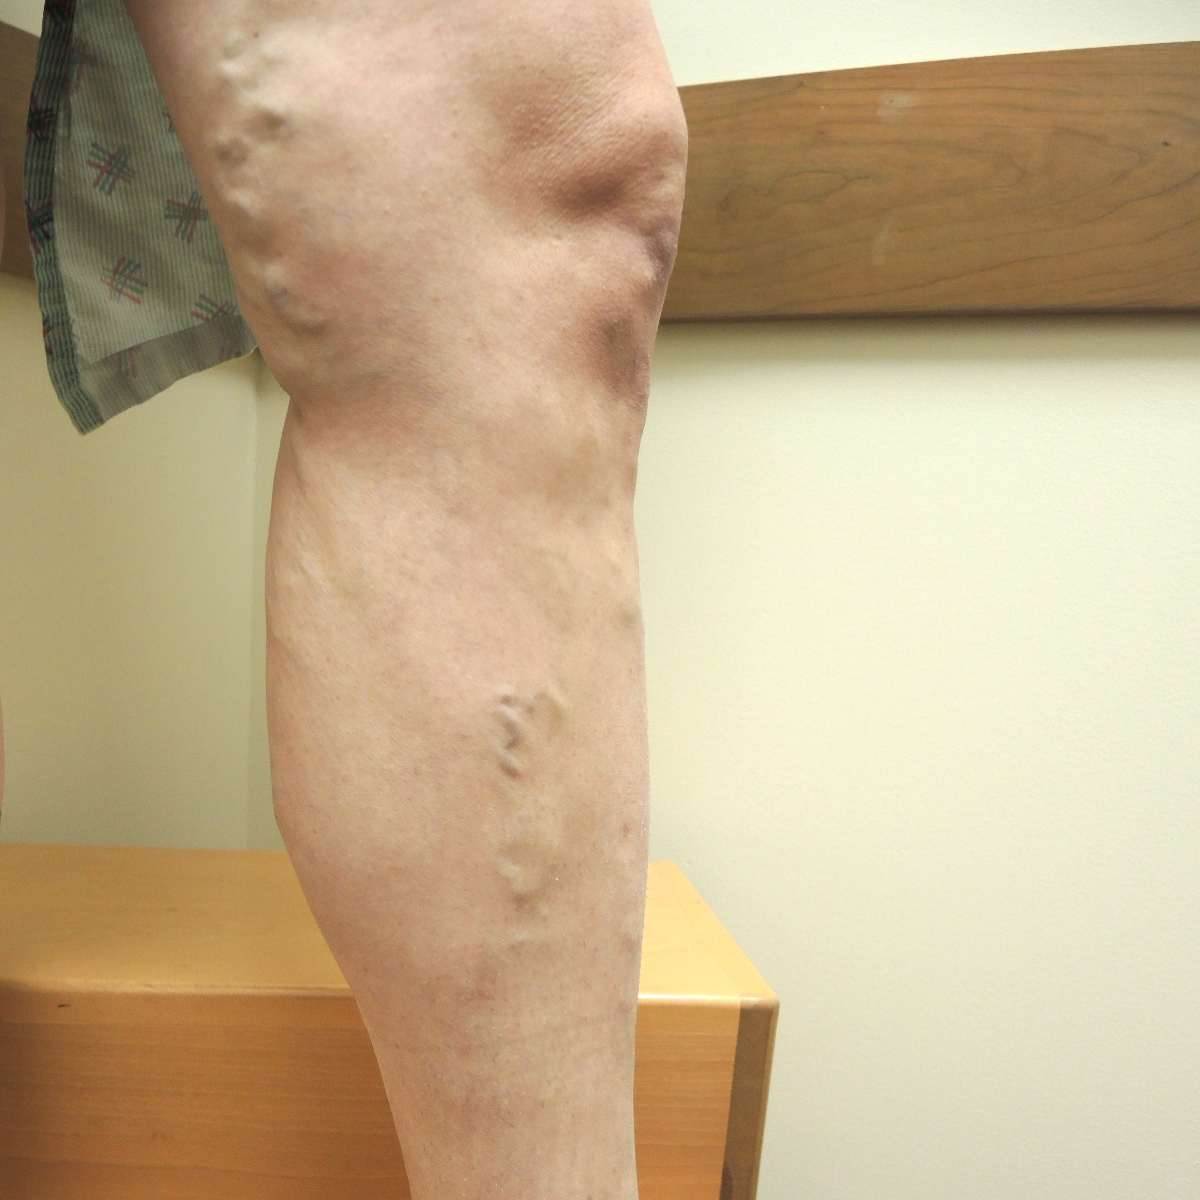 Vein Therapy Skybalance Med Spa